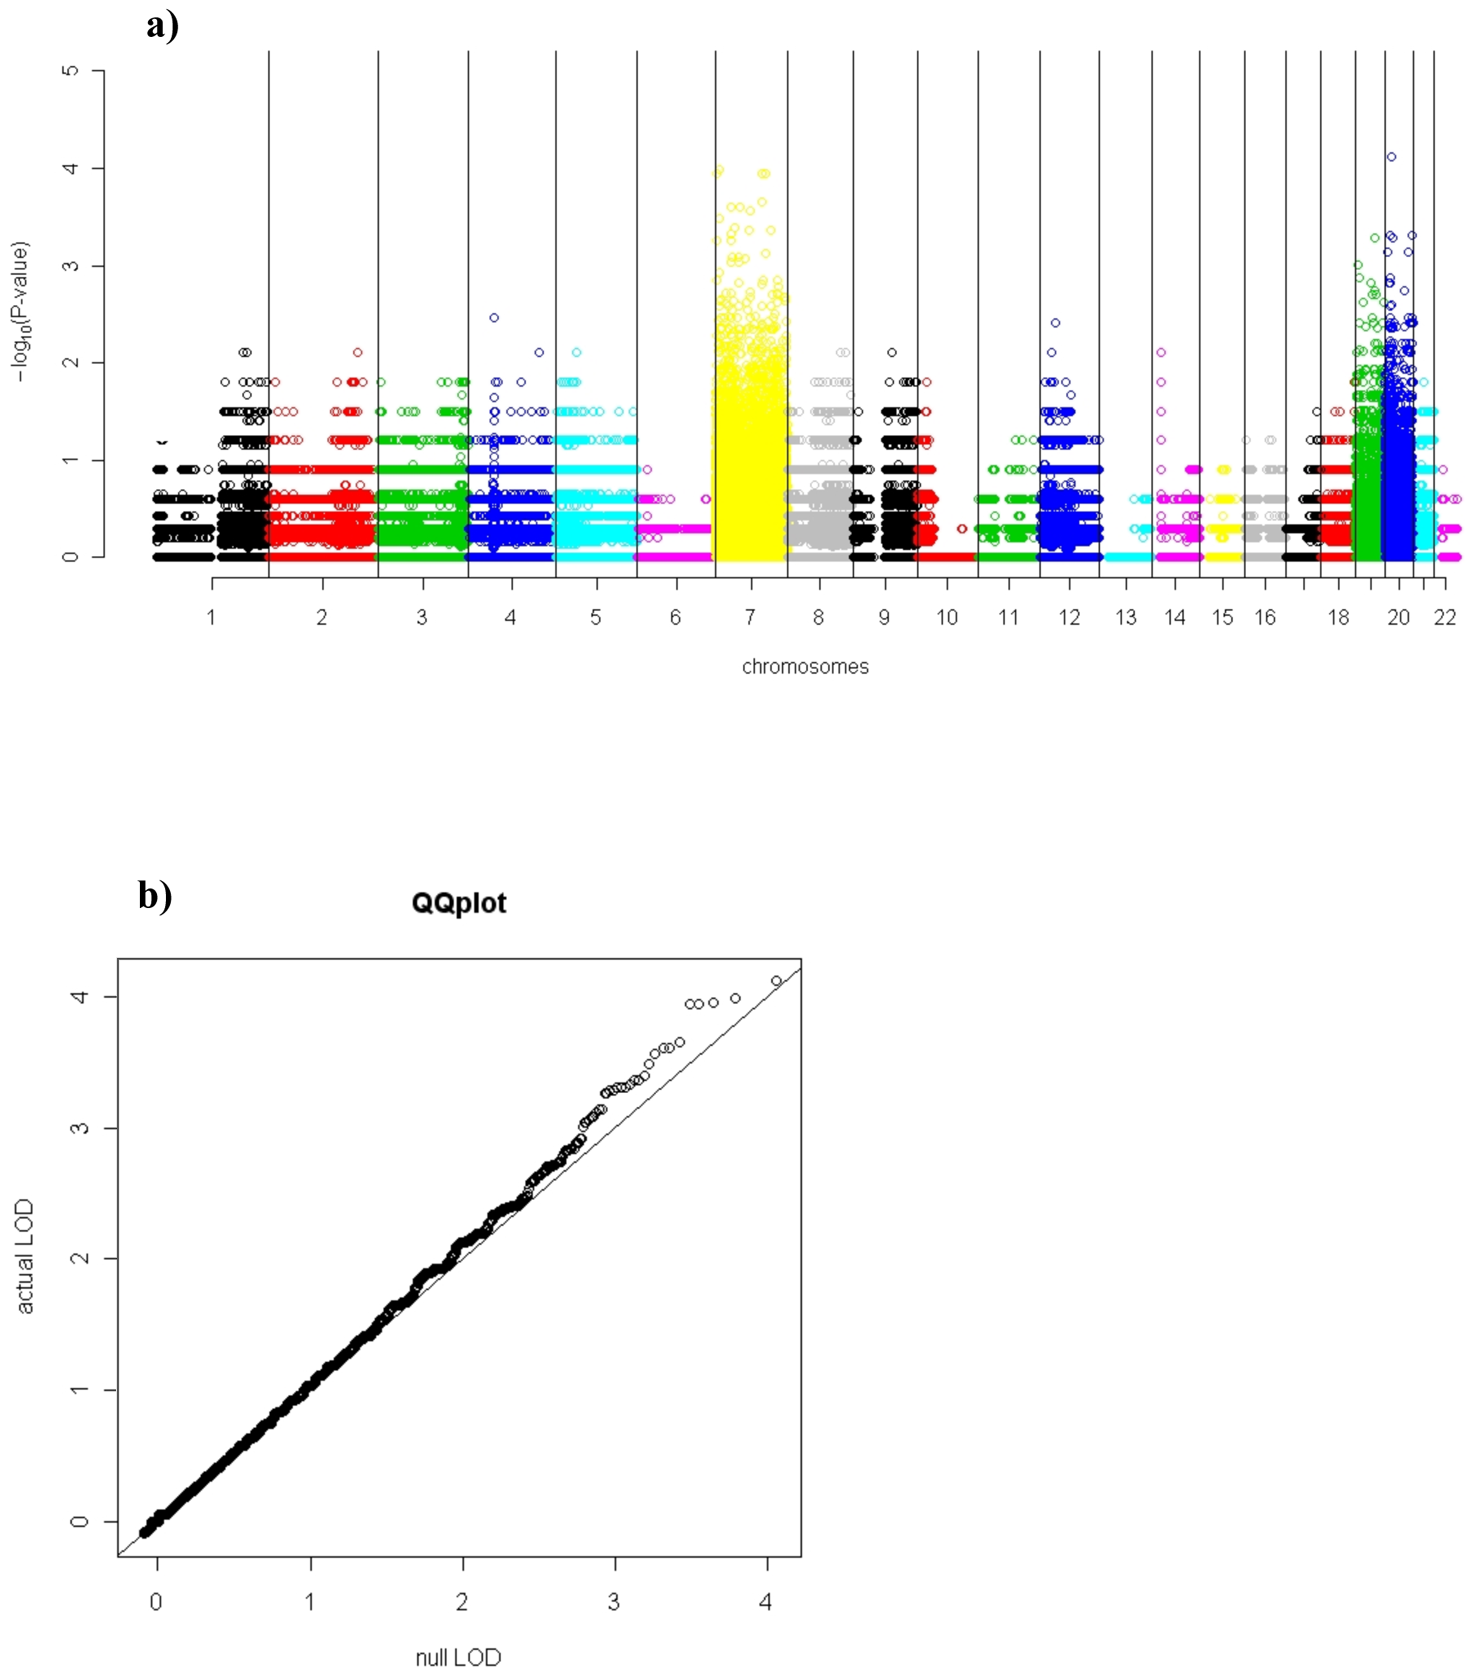 Genome wide ADT analysis of 178 TCGA glioblastoma samples.